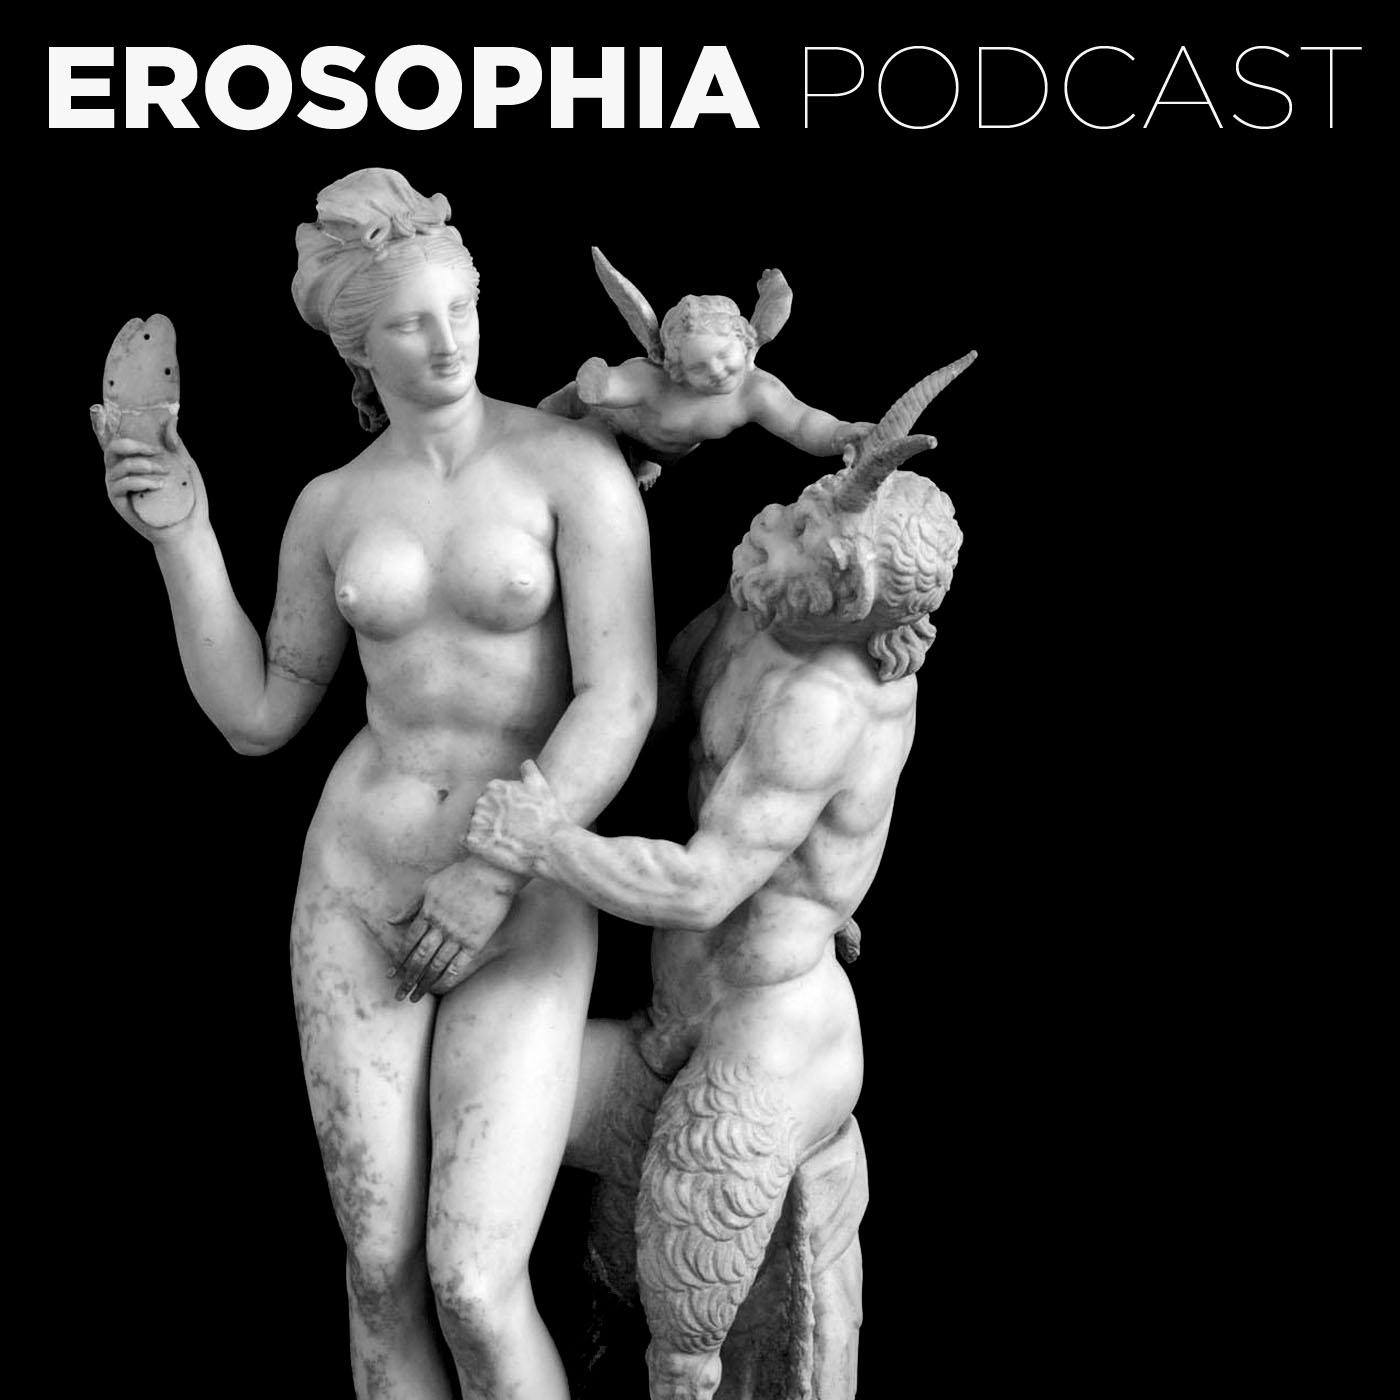 The Erosophia Podcast